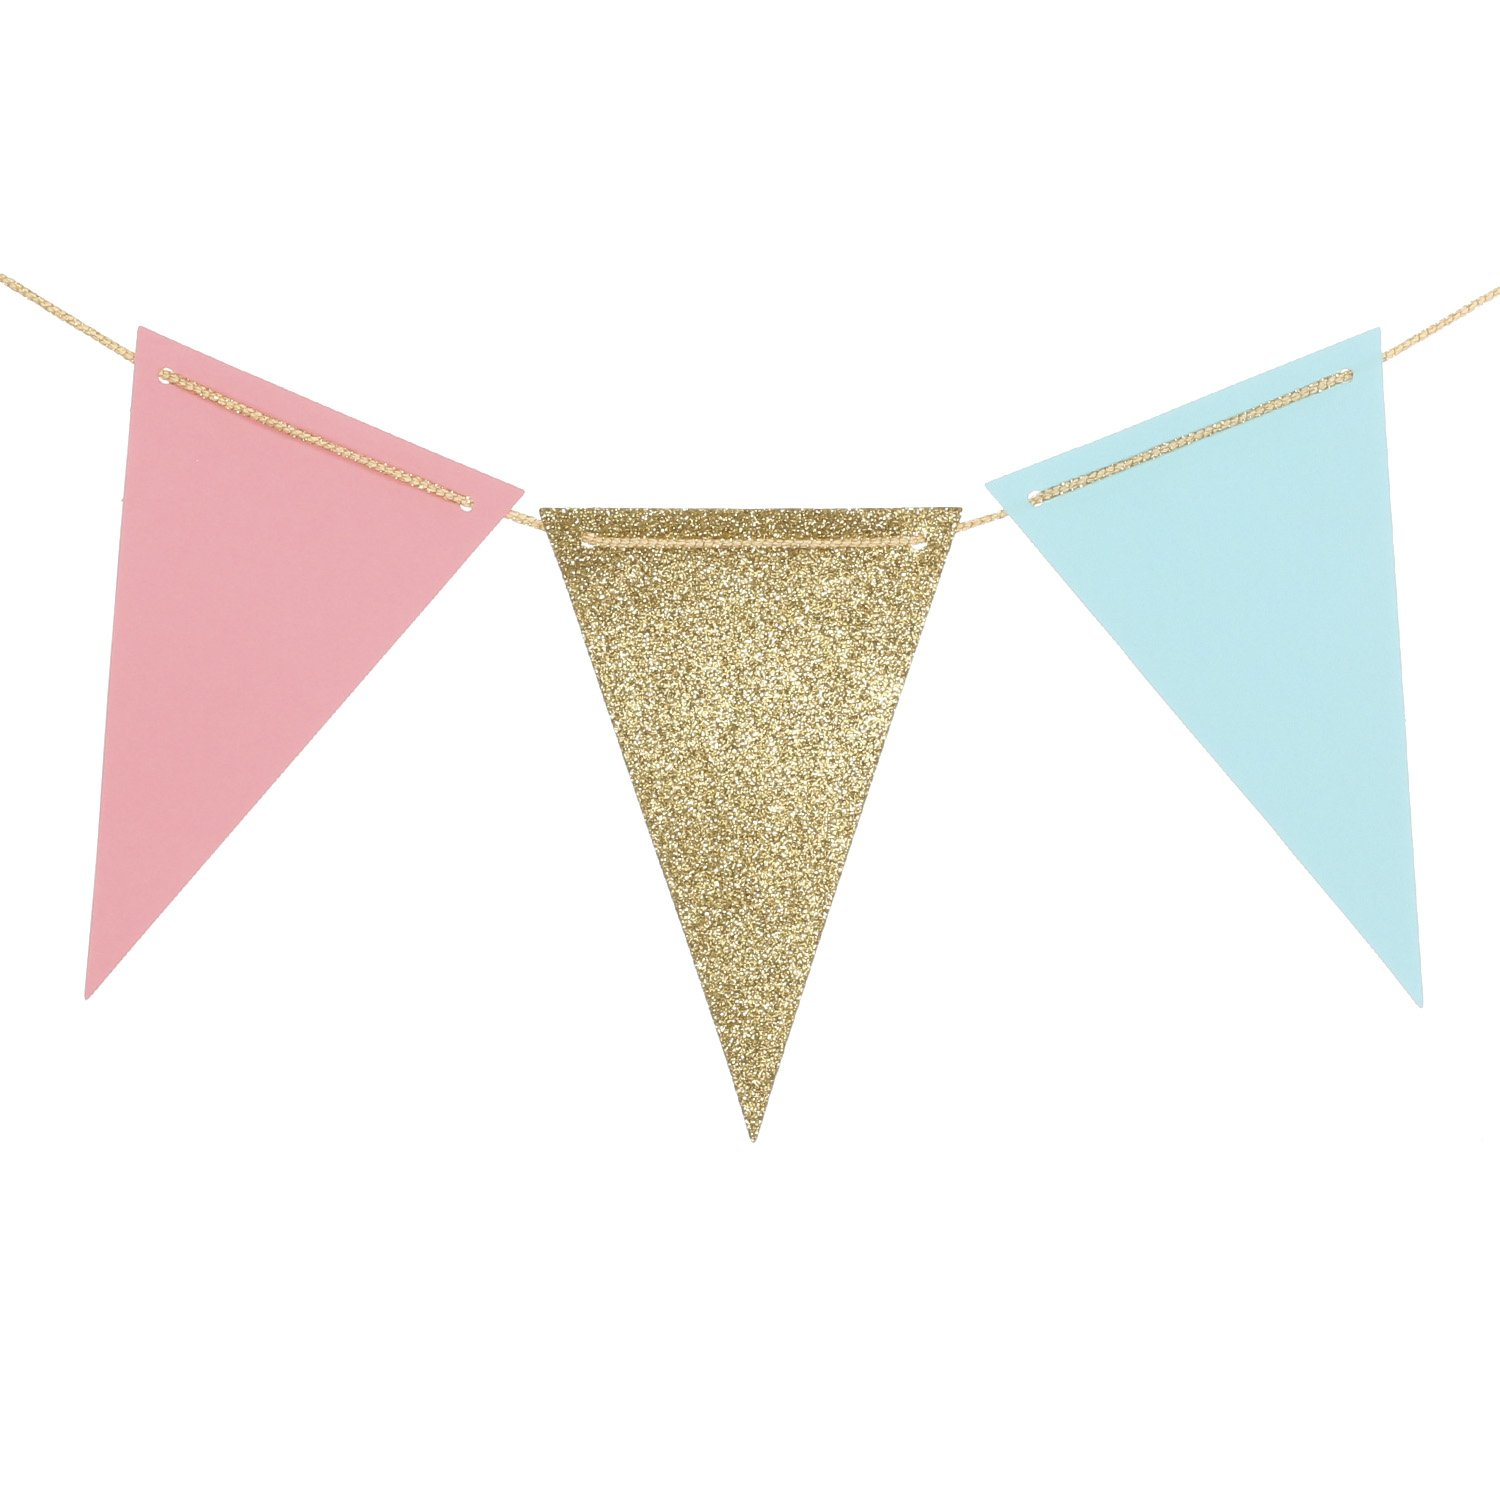 Ling's Moment 10 Feet Paper Pennant Banner Triangle Garland Vintage Glitter Gold Pink Blue Flag Banner for Gender Reveal, Wedding, Baby Shower, Bridal Shower, Event & Party Supplies, 15pcs Flags